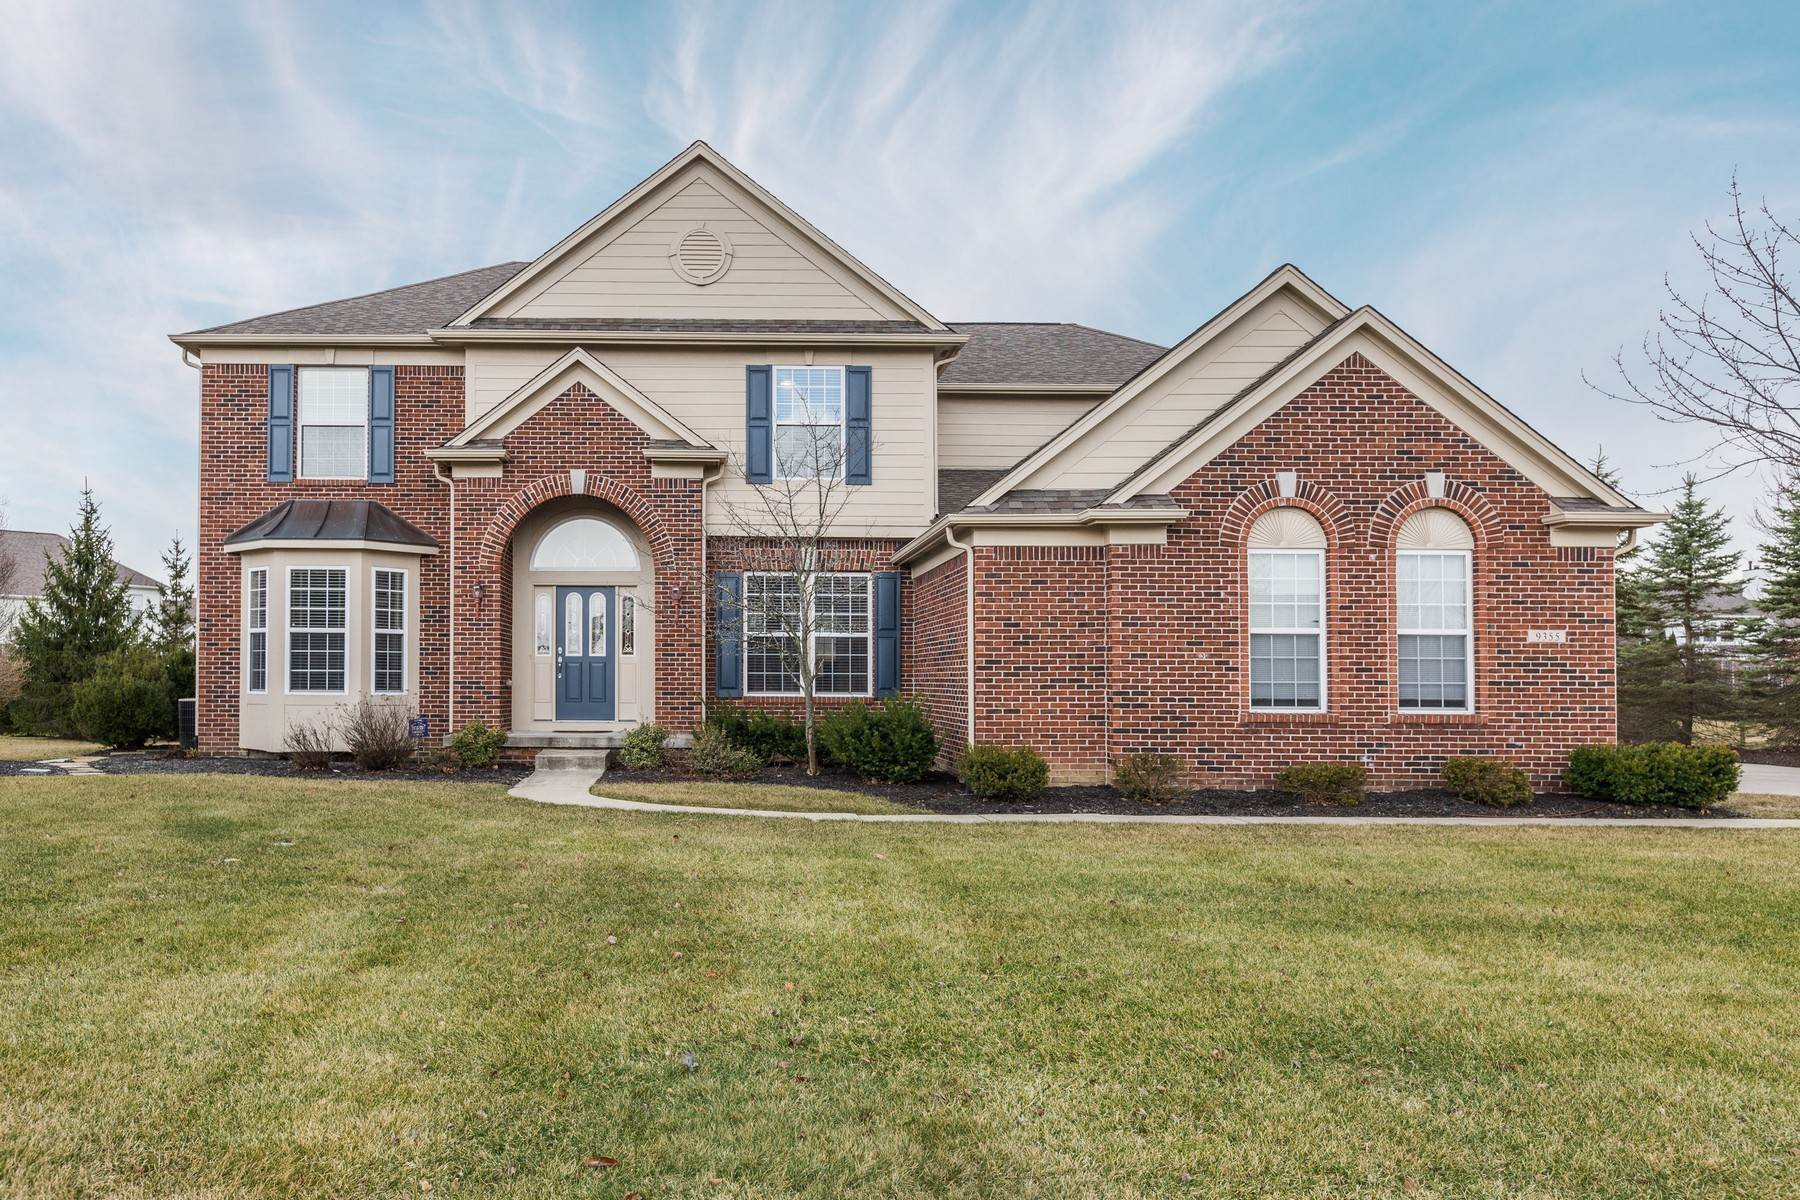 Single Family Homes for Sale at Immaculate Executive Home 9355 Cobblestone Court Zionsville, Indiana 46077 United States